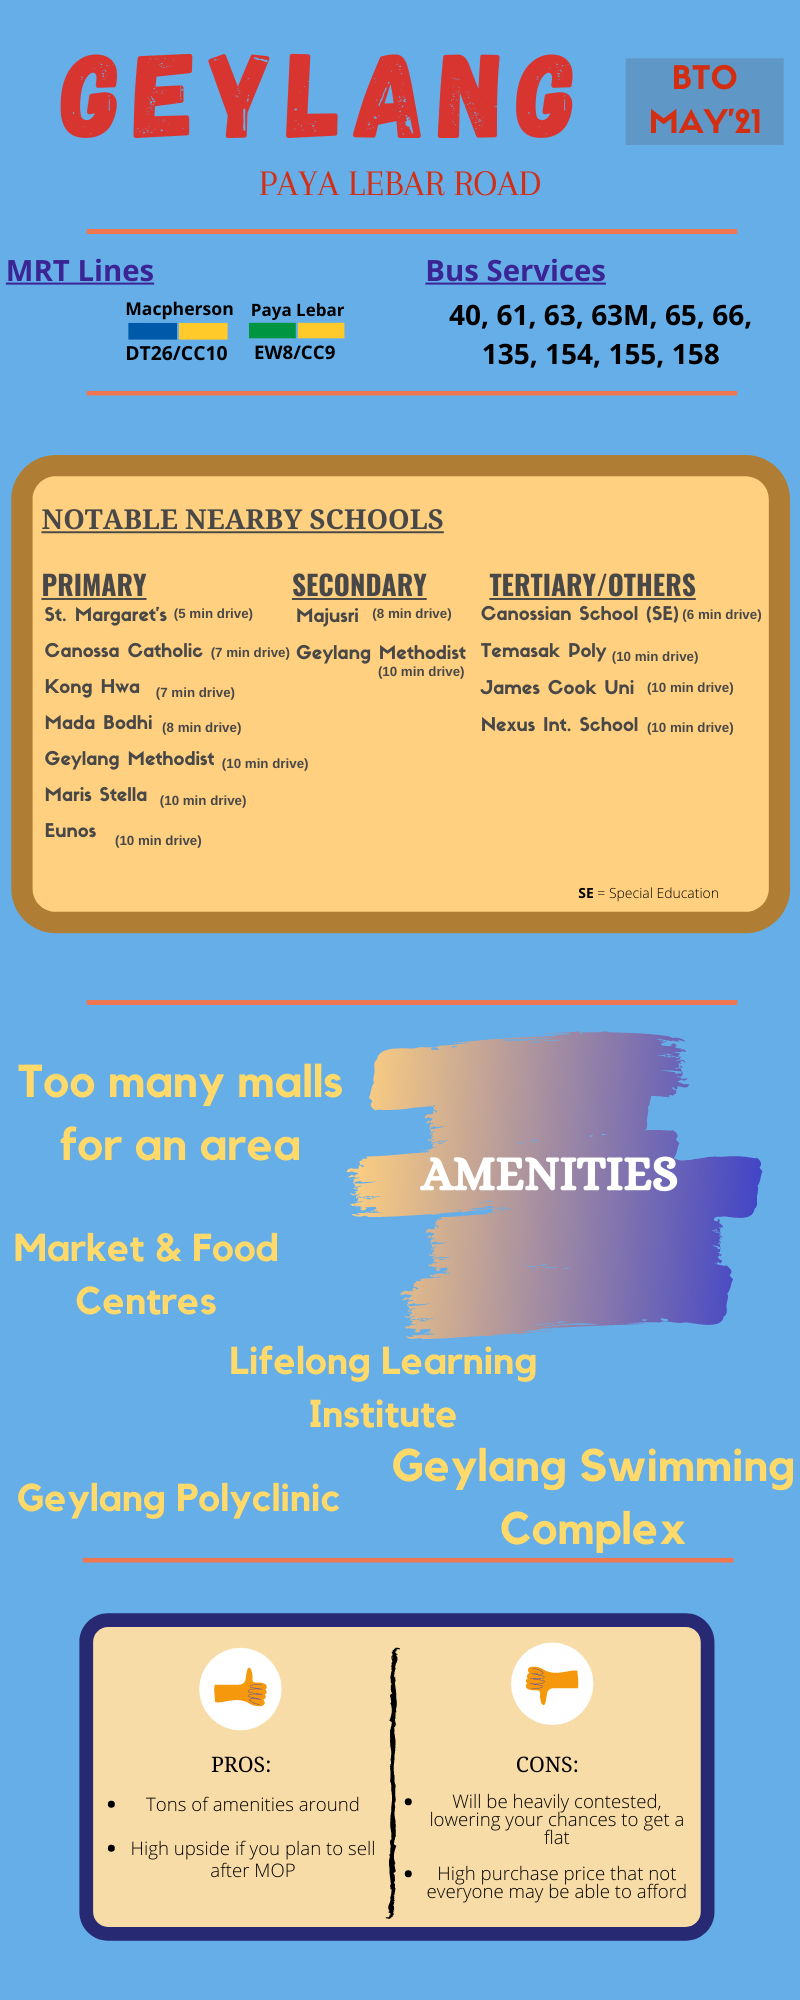 An infographic for Geylang MAy'21